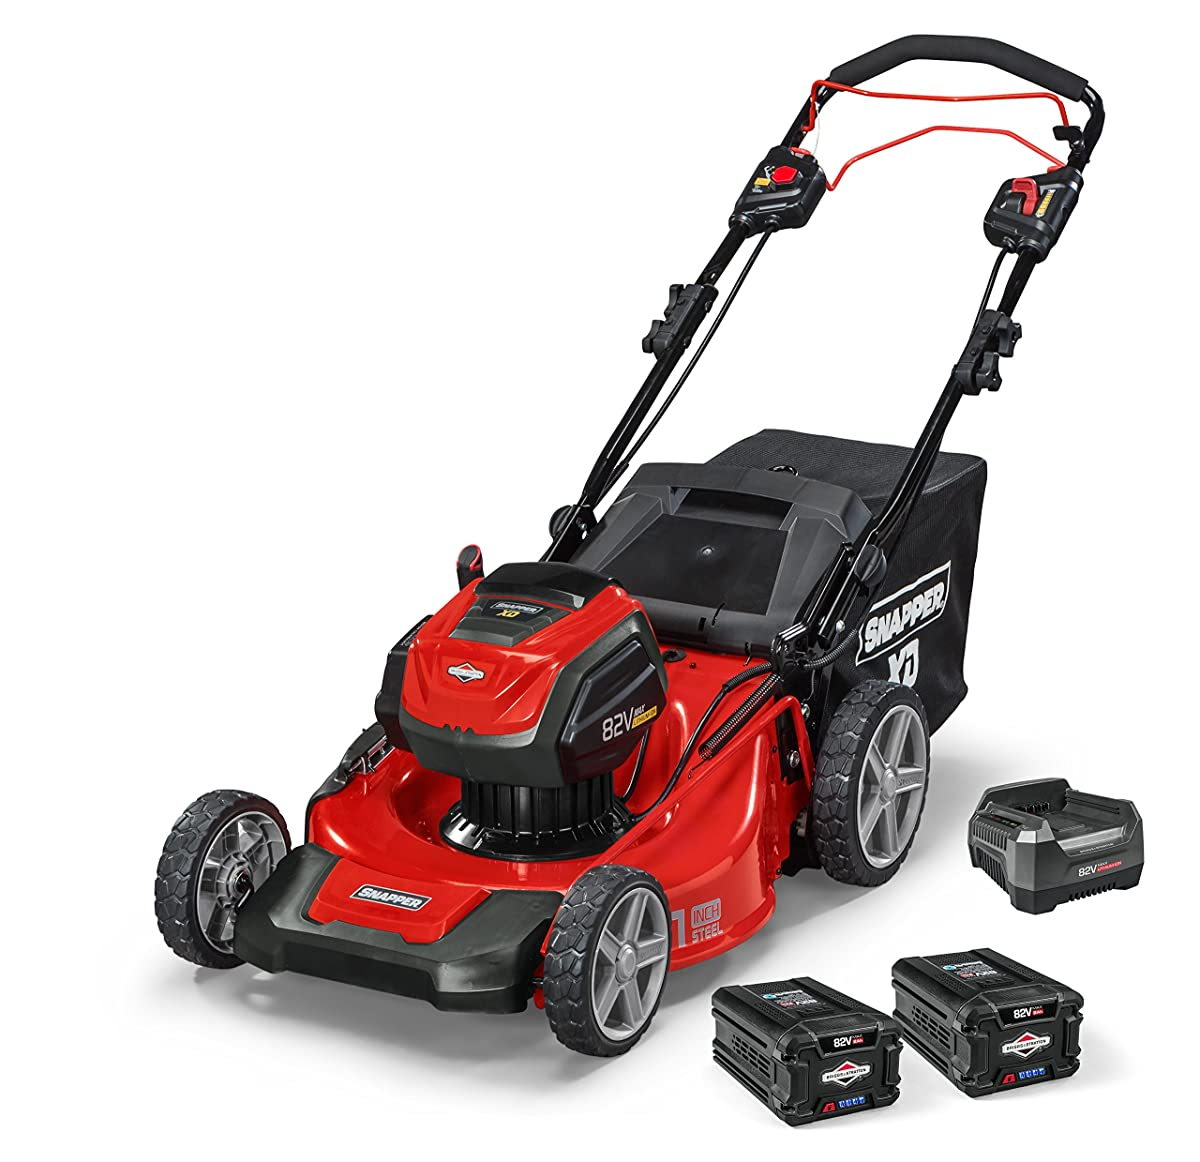 Snapper XD SXD21SPWM82K 82V Cordless 21-Inch Self-Propelled Walk Lawnmower Kit with (2) 2Ah Battery & (1) Rapid Charger